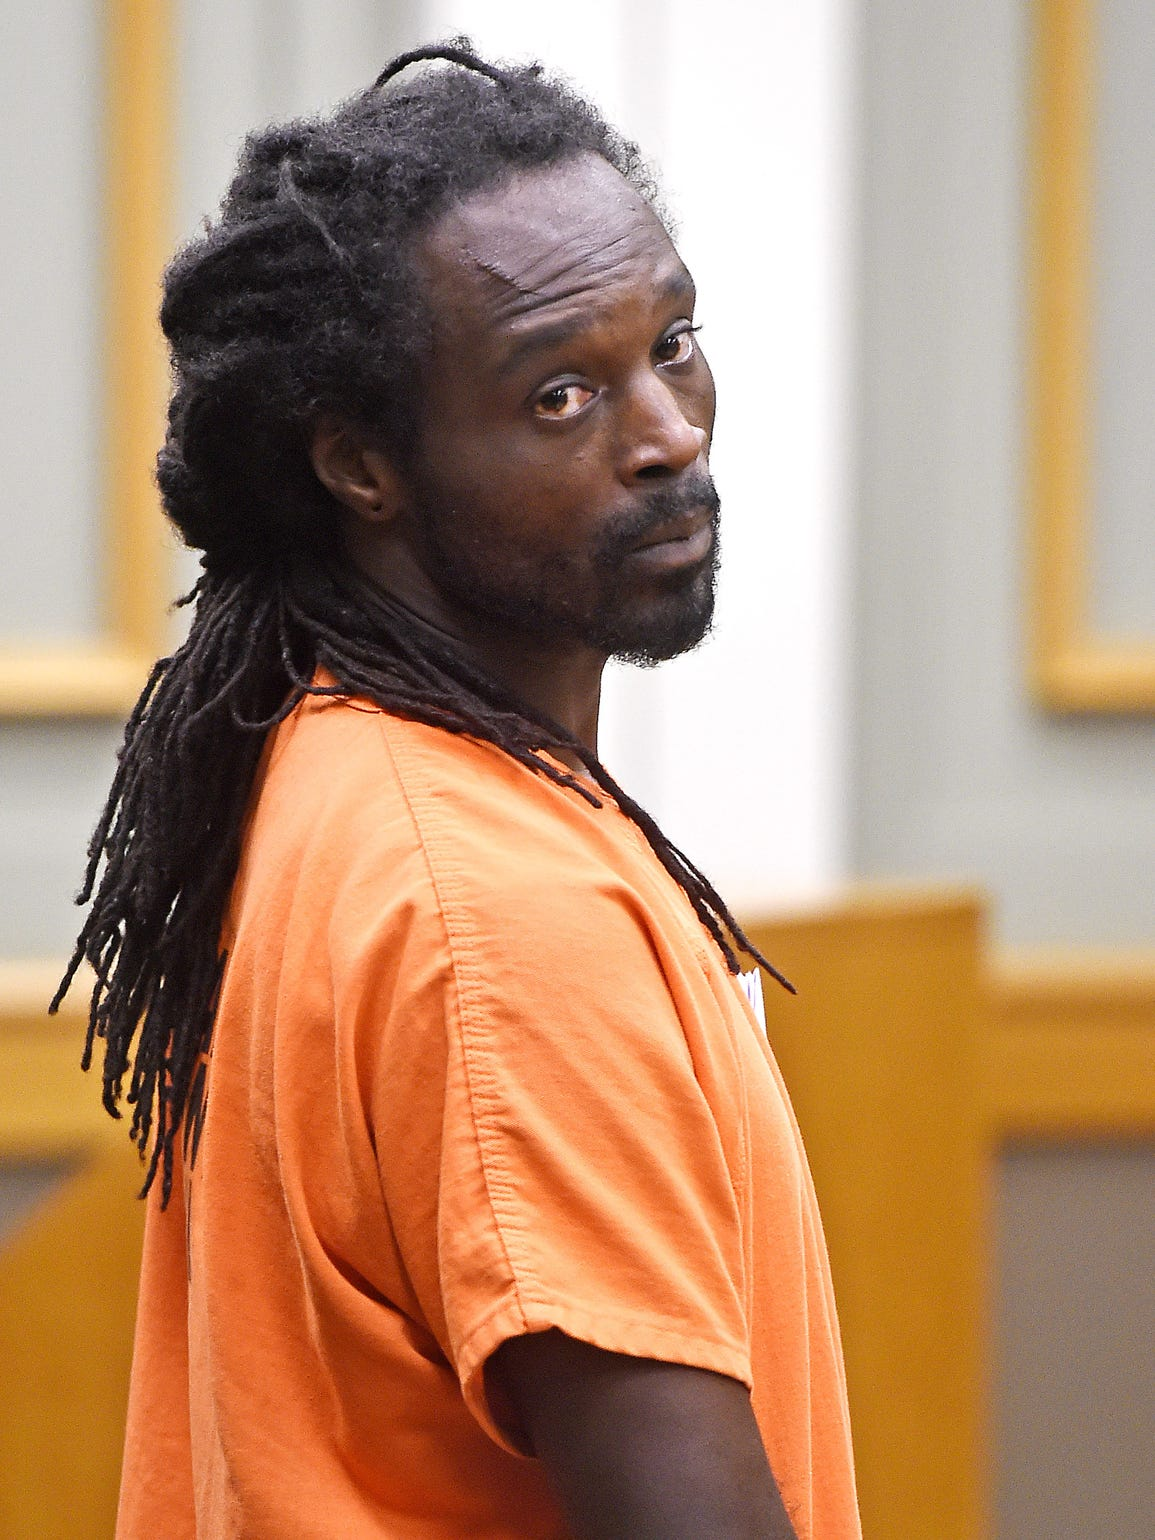 Tavarie Williams, a man accused of trafficking a girl from Texas, makes his first court appearance in Williamson County, Tenn., on Aug. 10, 2016.